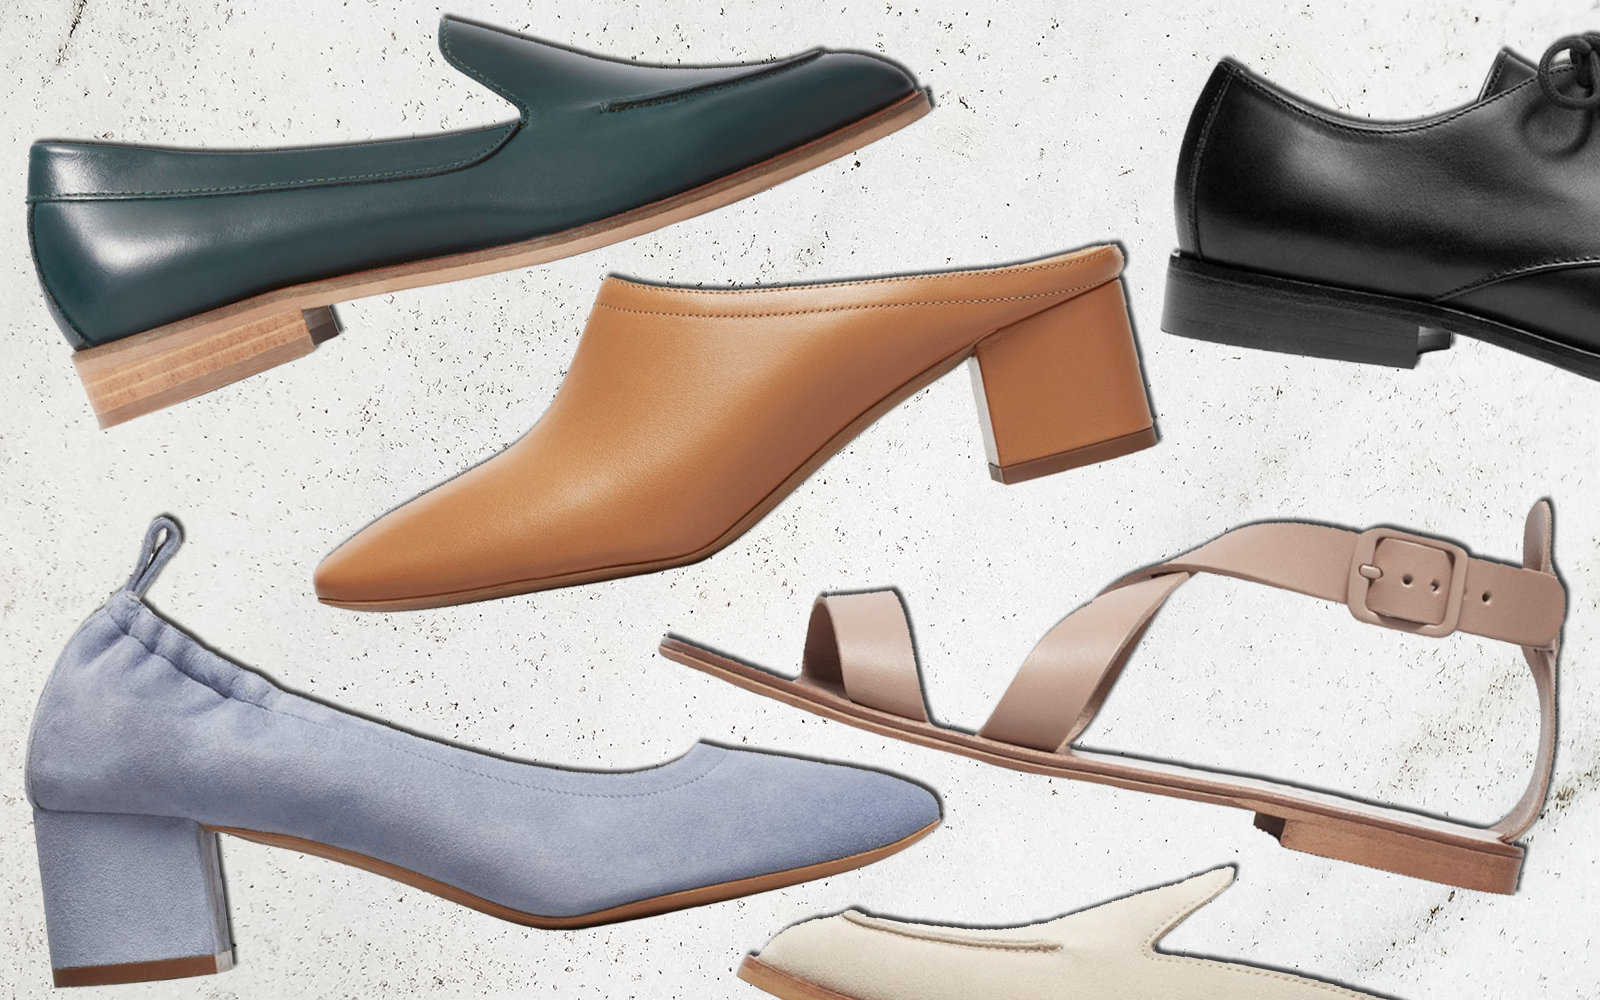 everlane-choose-what-you-pay-shoes-sale-EVERLANEPAY1118.jpg